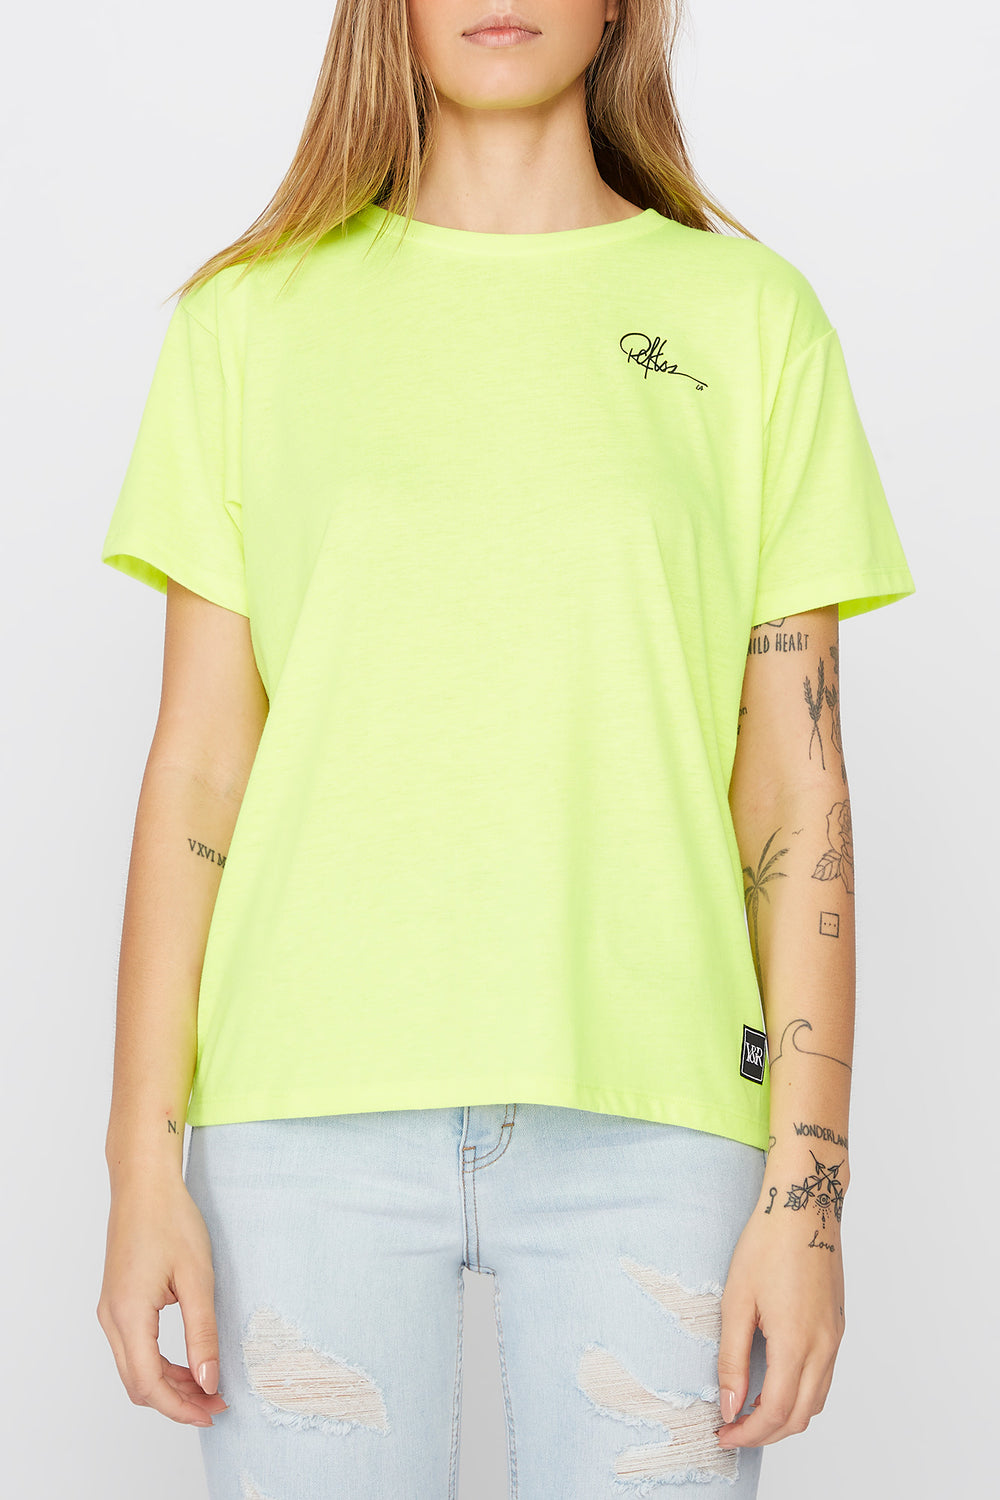 Young & Reckless Womens Neon Cities Of LA T-Shirt Neon Yellow